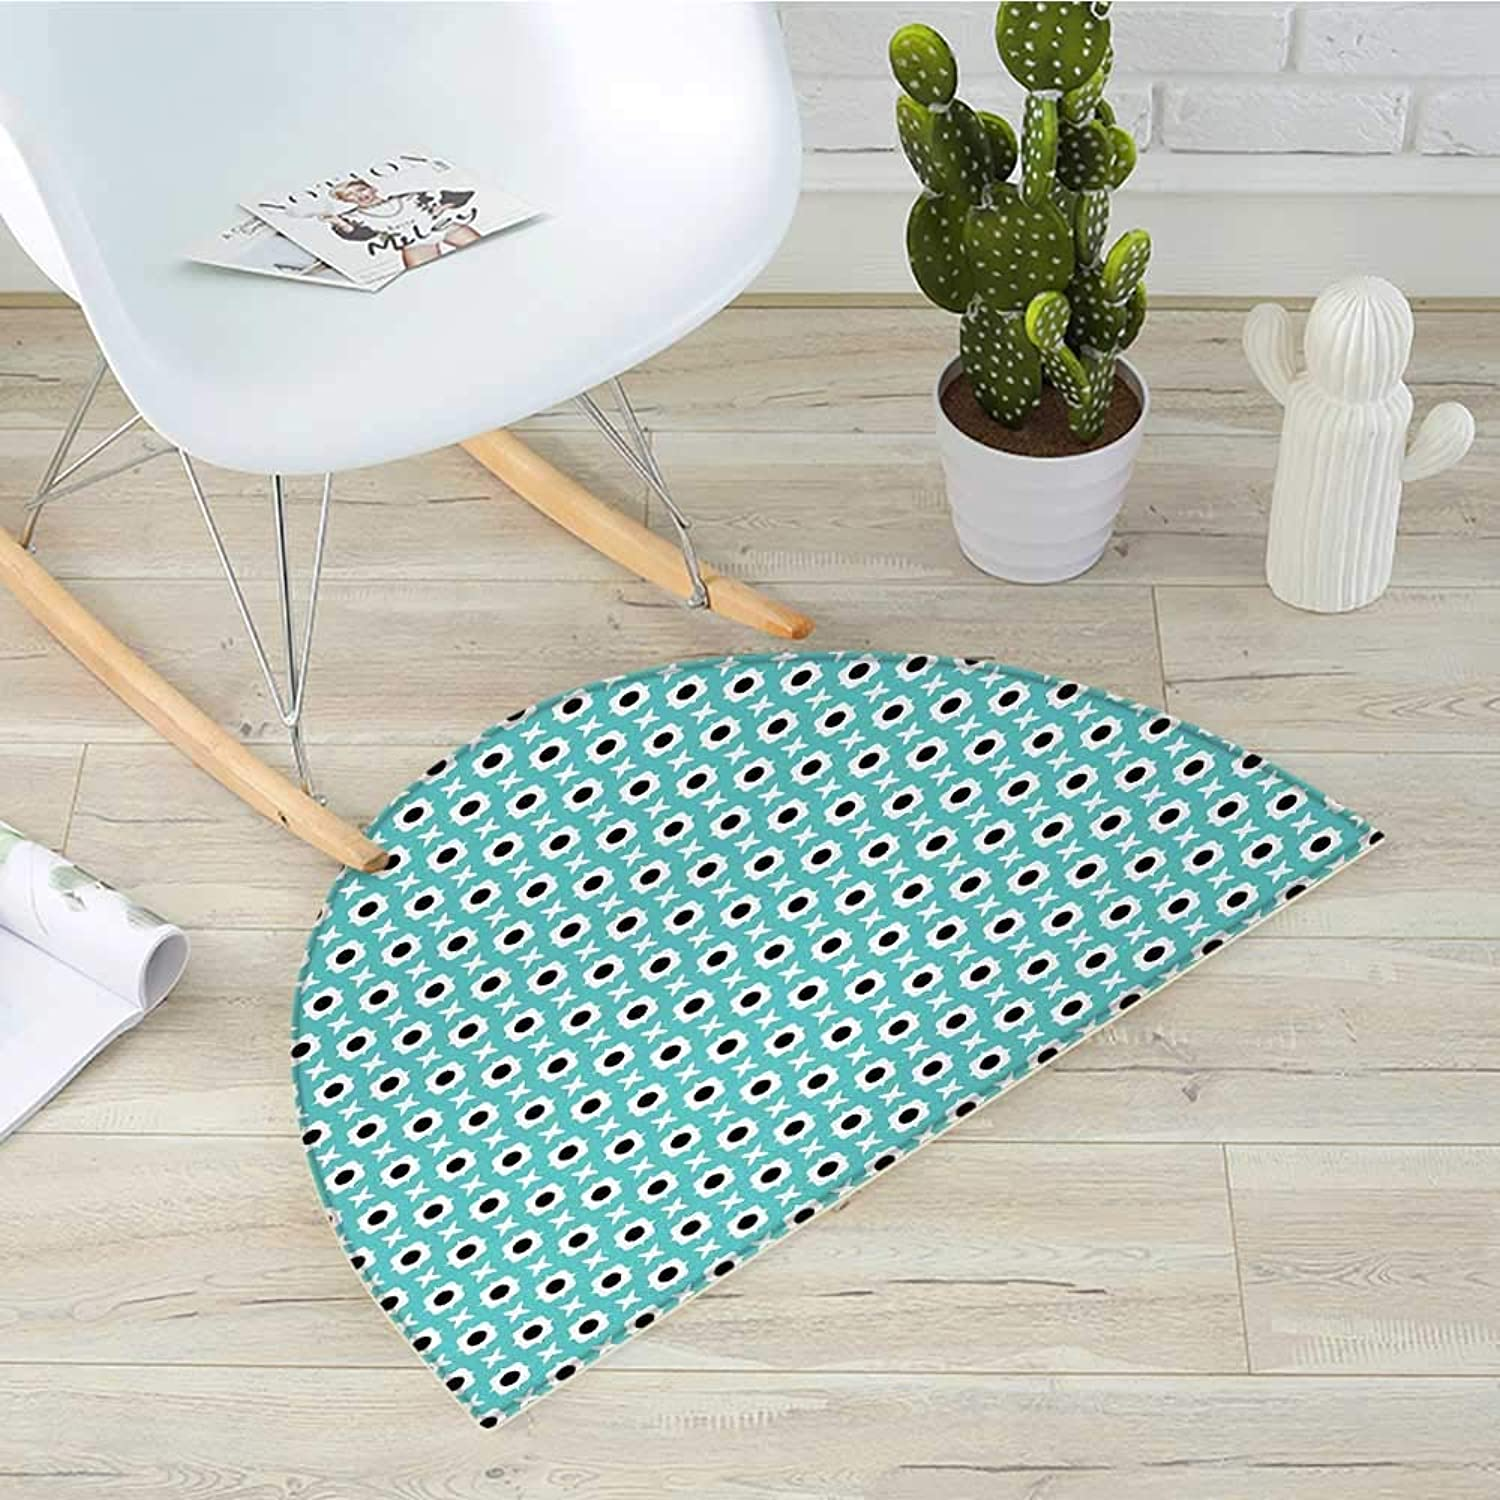 Retro Half Round Door mats Abstract Ornaments with Black Dots Inside Floral Motifs Symmetrical Tile Bathroom Mat H 43.3  xD 64.9  Pale bluee Black White